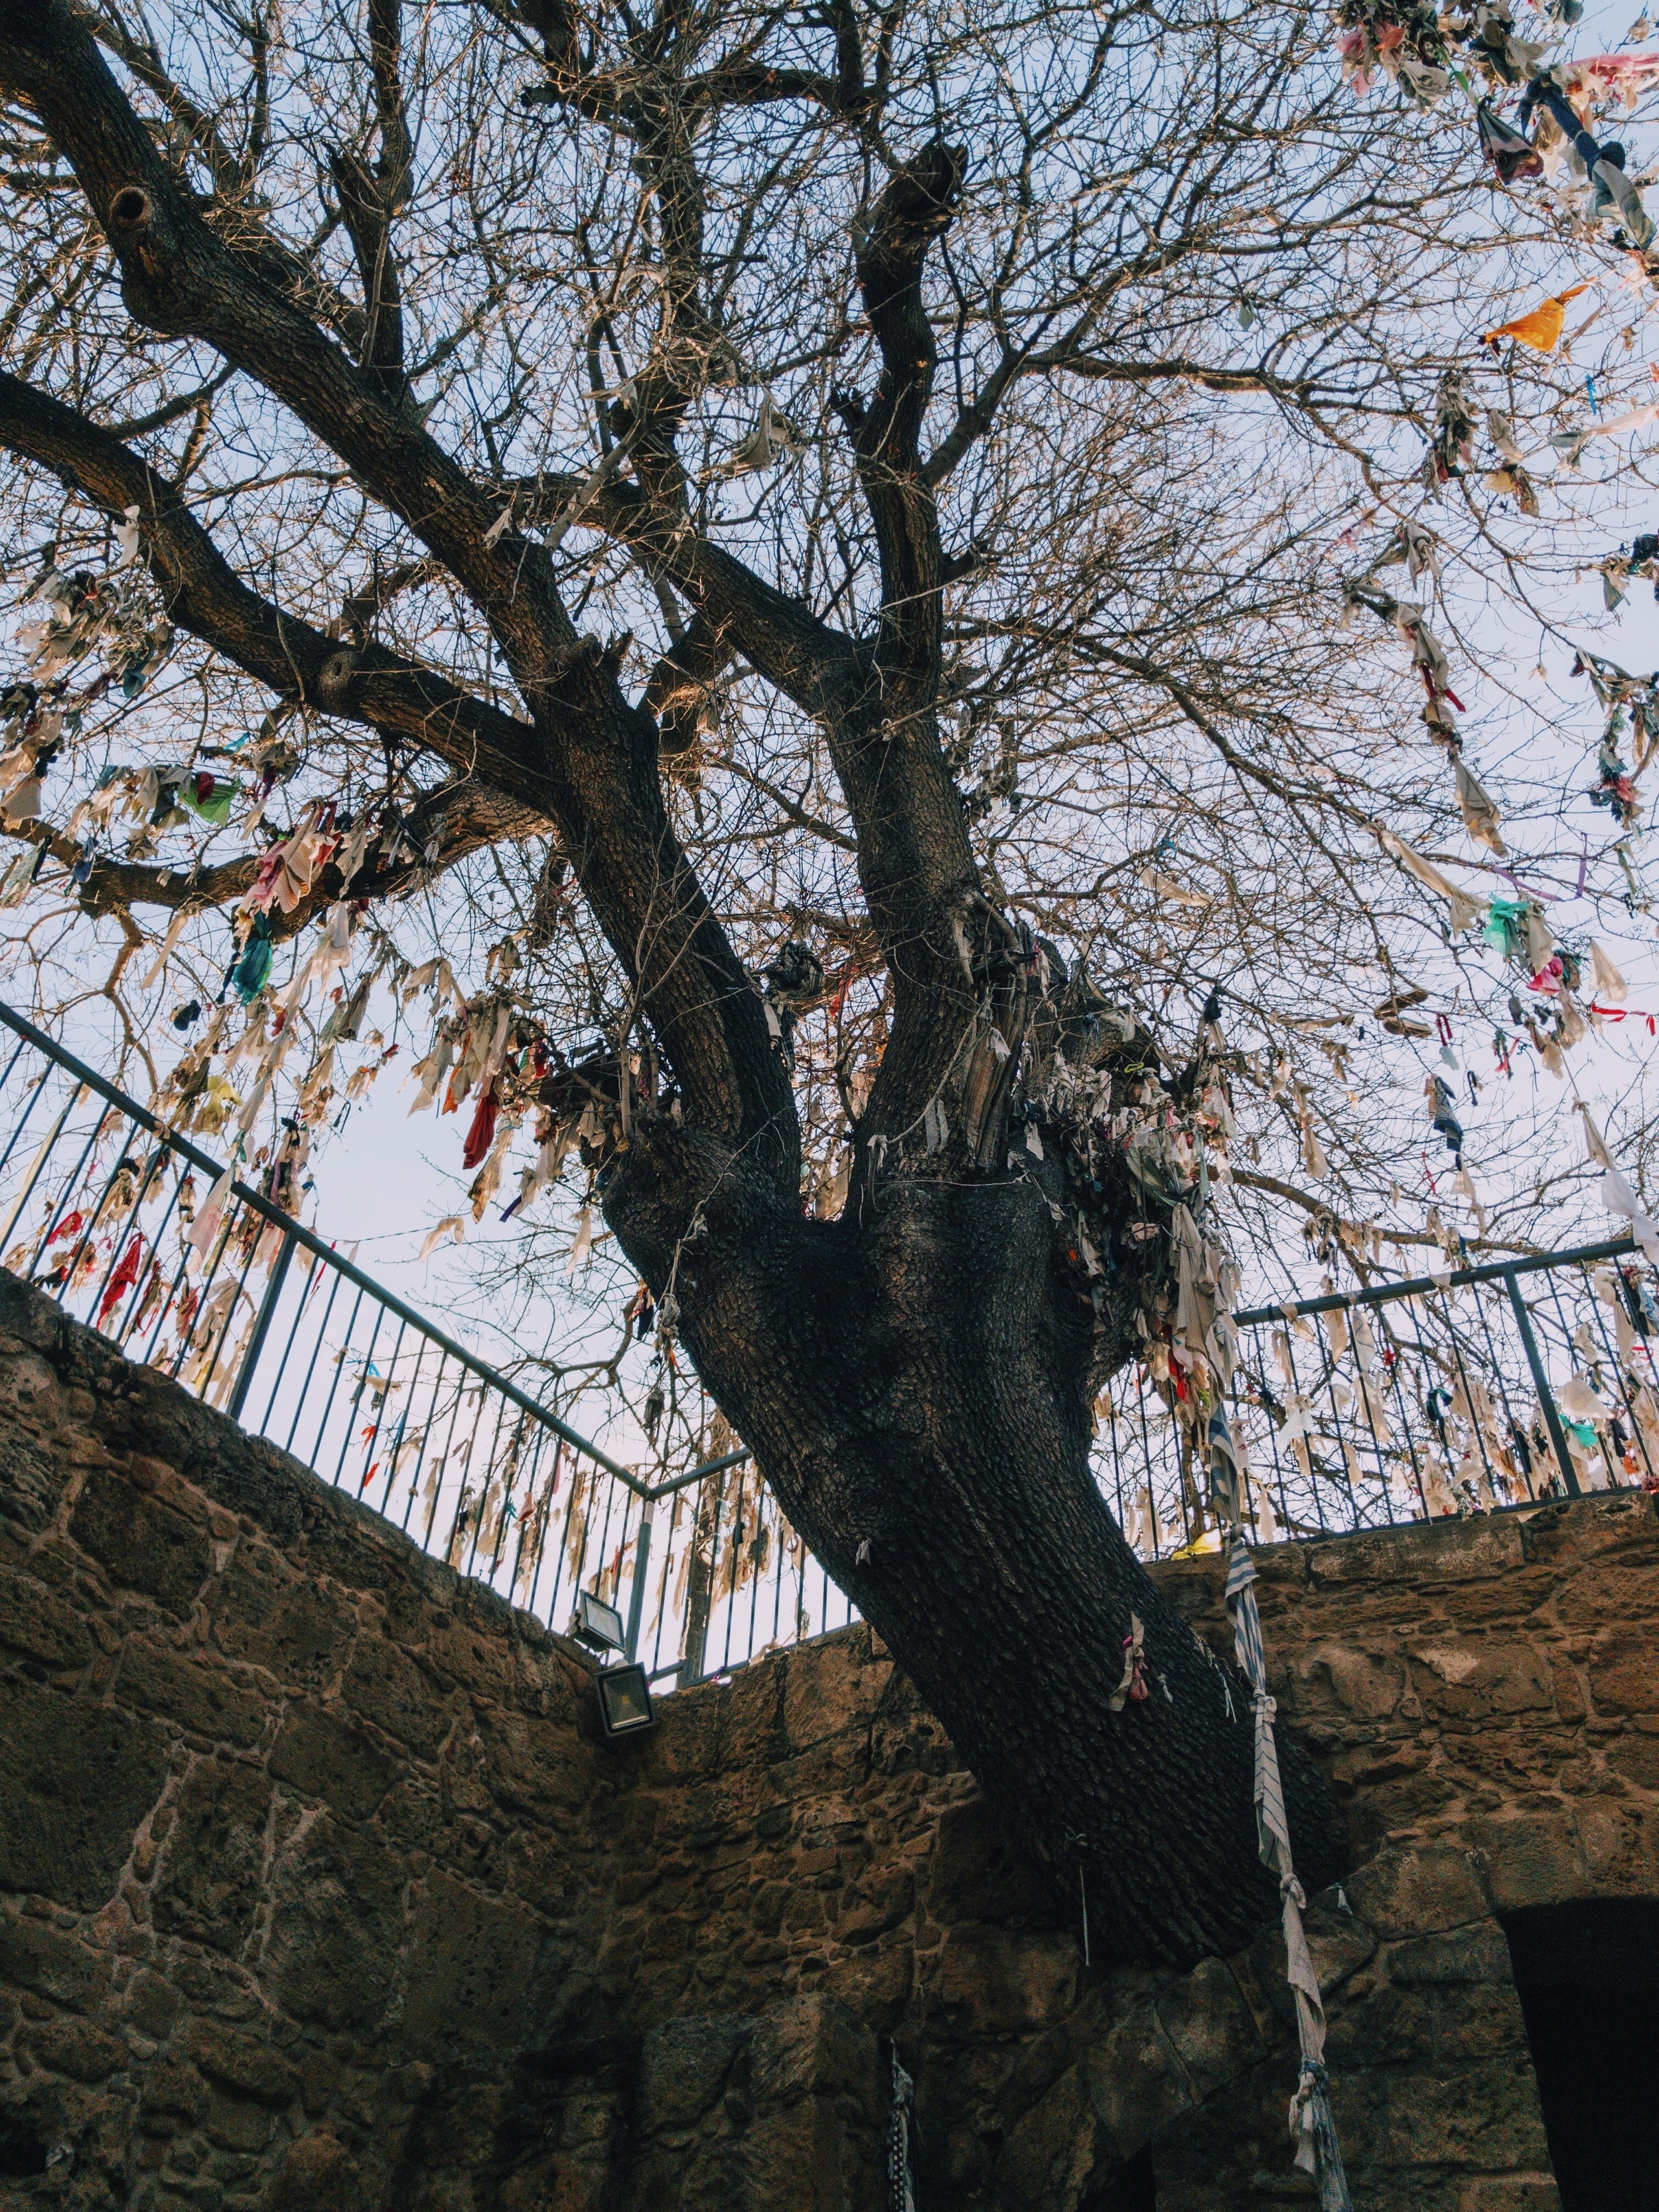 The tree is covered with votive rags.